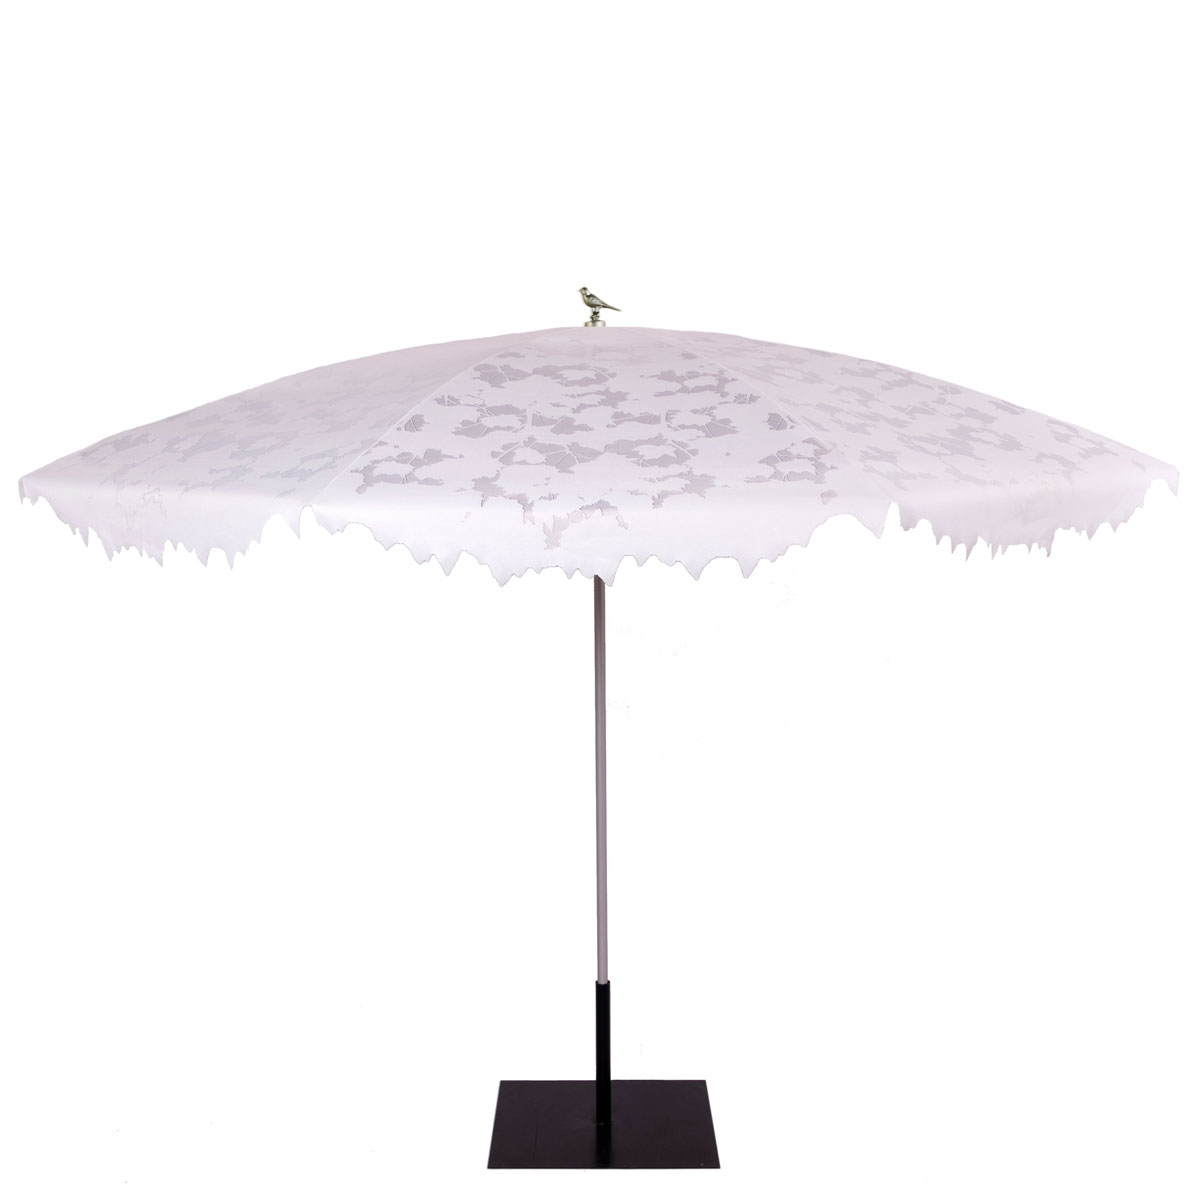 Droog - Shadylace Parasol XL White